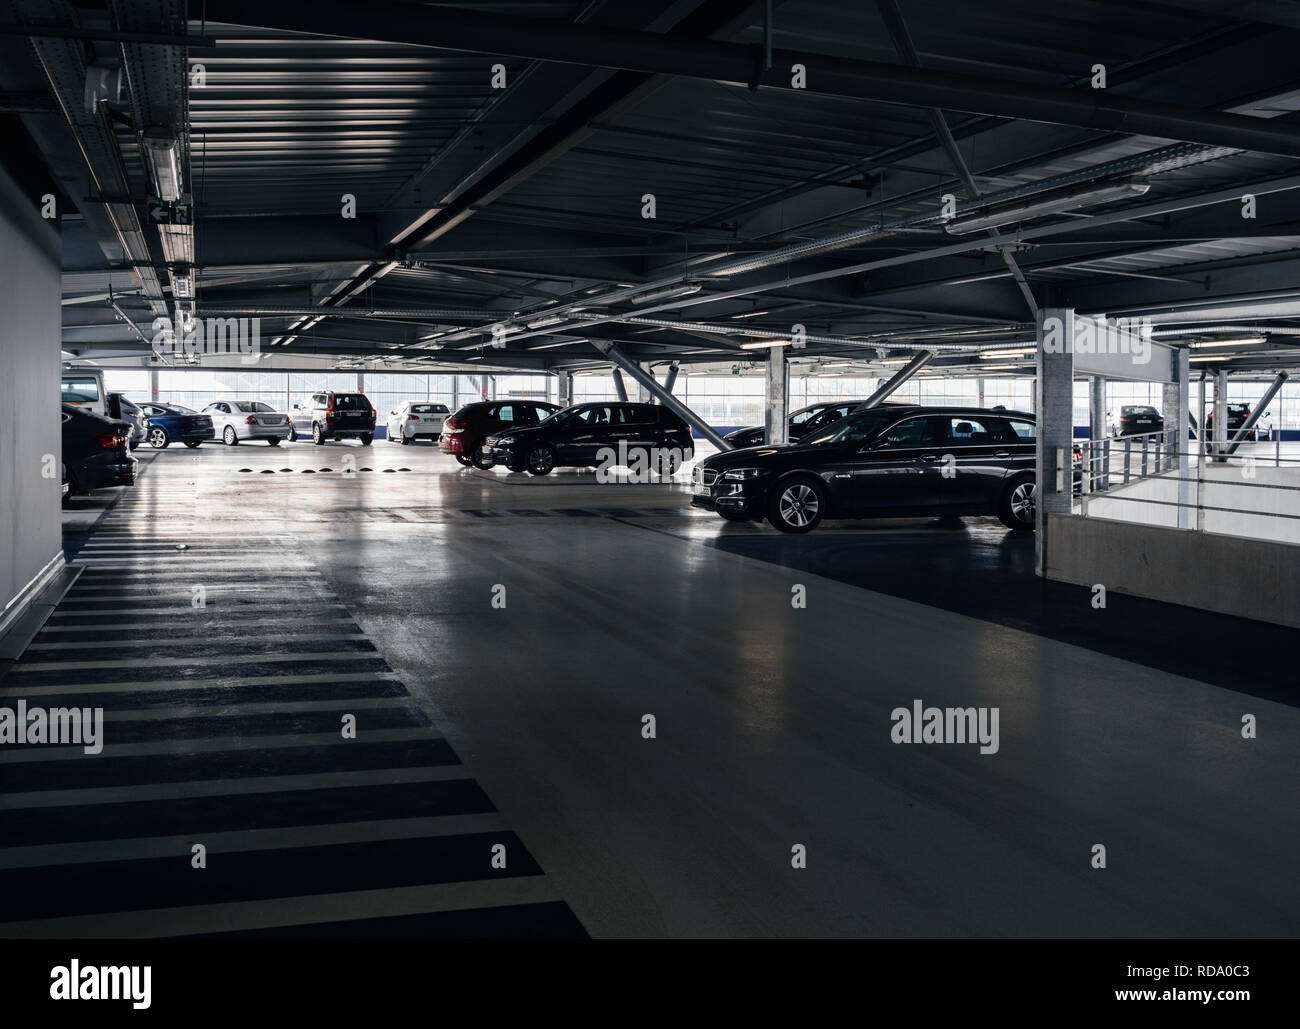 BASEL, SWITZERLAND - MAR 22, 2018: Luxury cars parked inside the parking of a modern airport BMW, MErcedes, Volvo, Saab - Stock Image